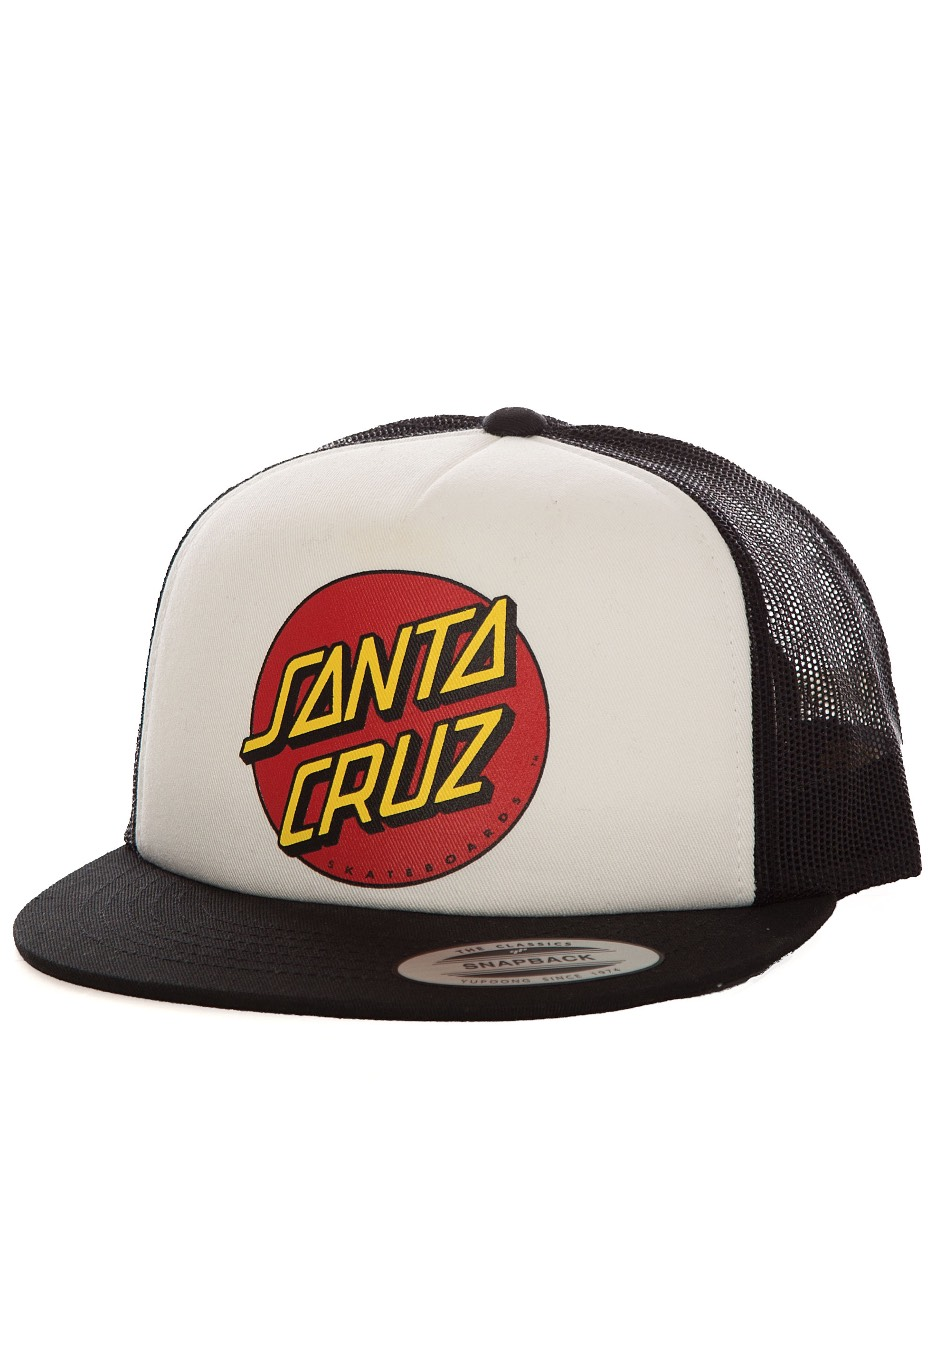 Santa Cruz - Classic Dot White/Black - Caps